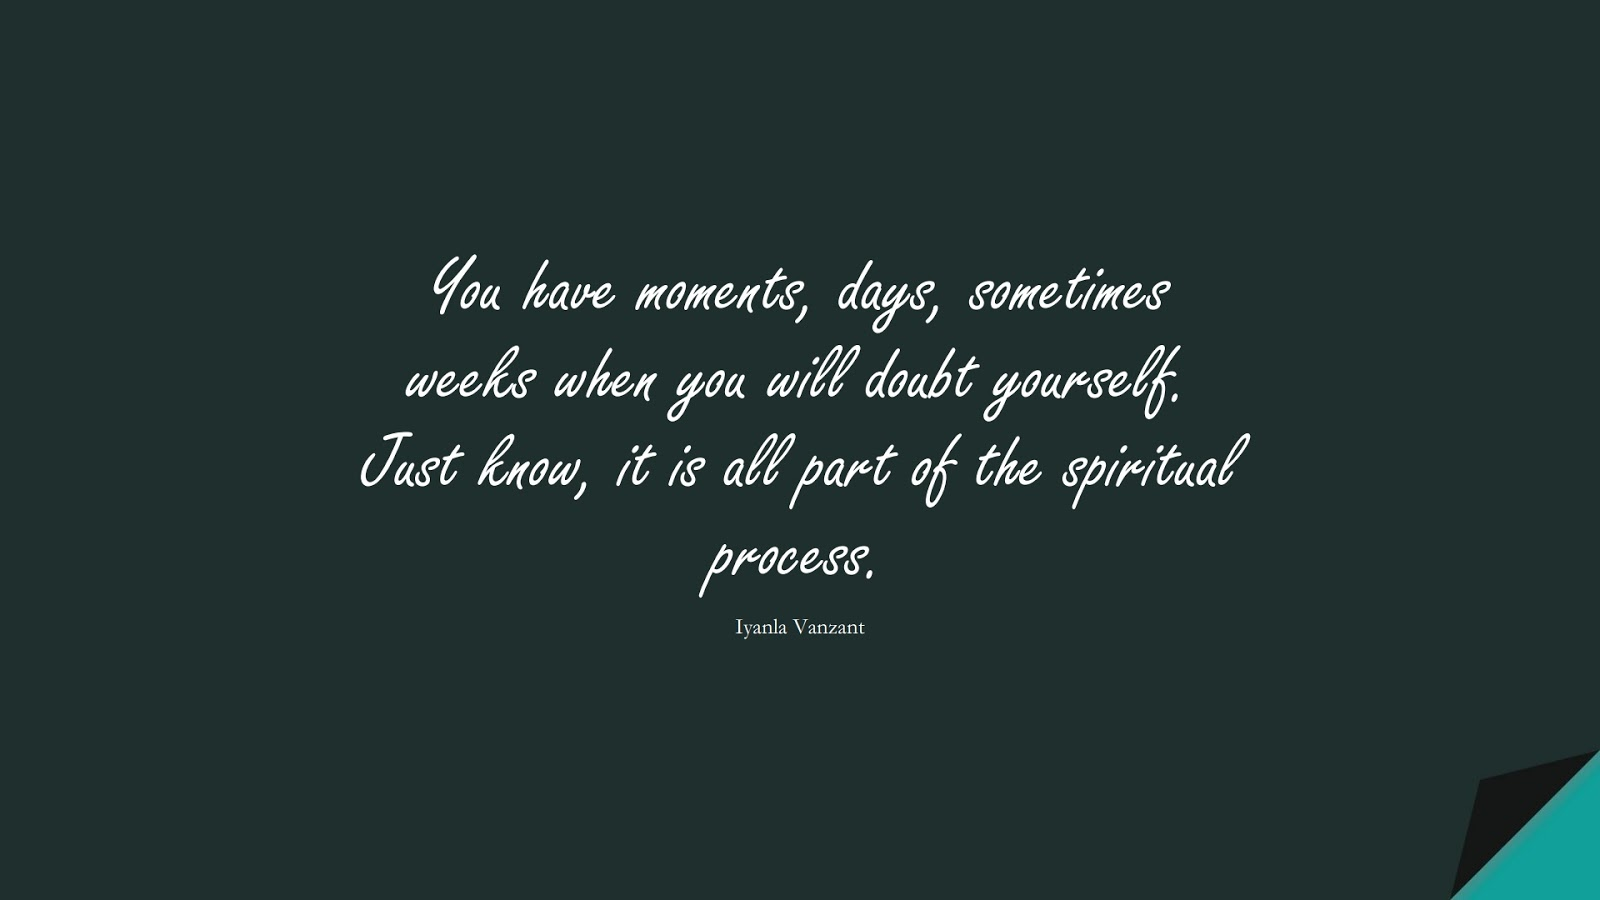 You have moments, days, sometimes weeks when you will doubt yourself. Just know, it is all part of the spiritual process. (Iyanla Vanzant);  #SelfEsteemQuotes